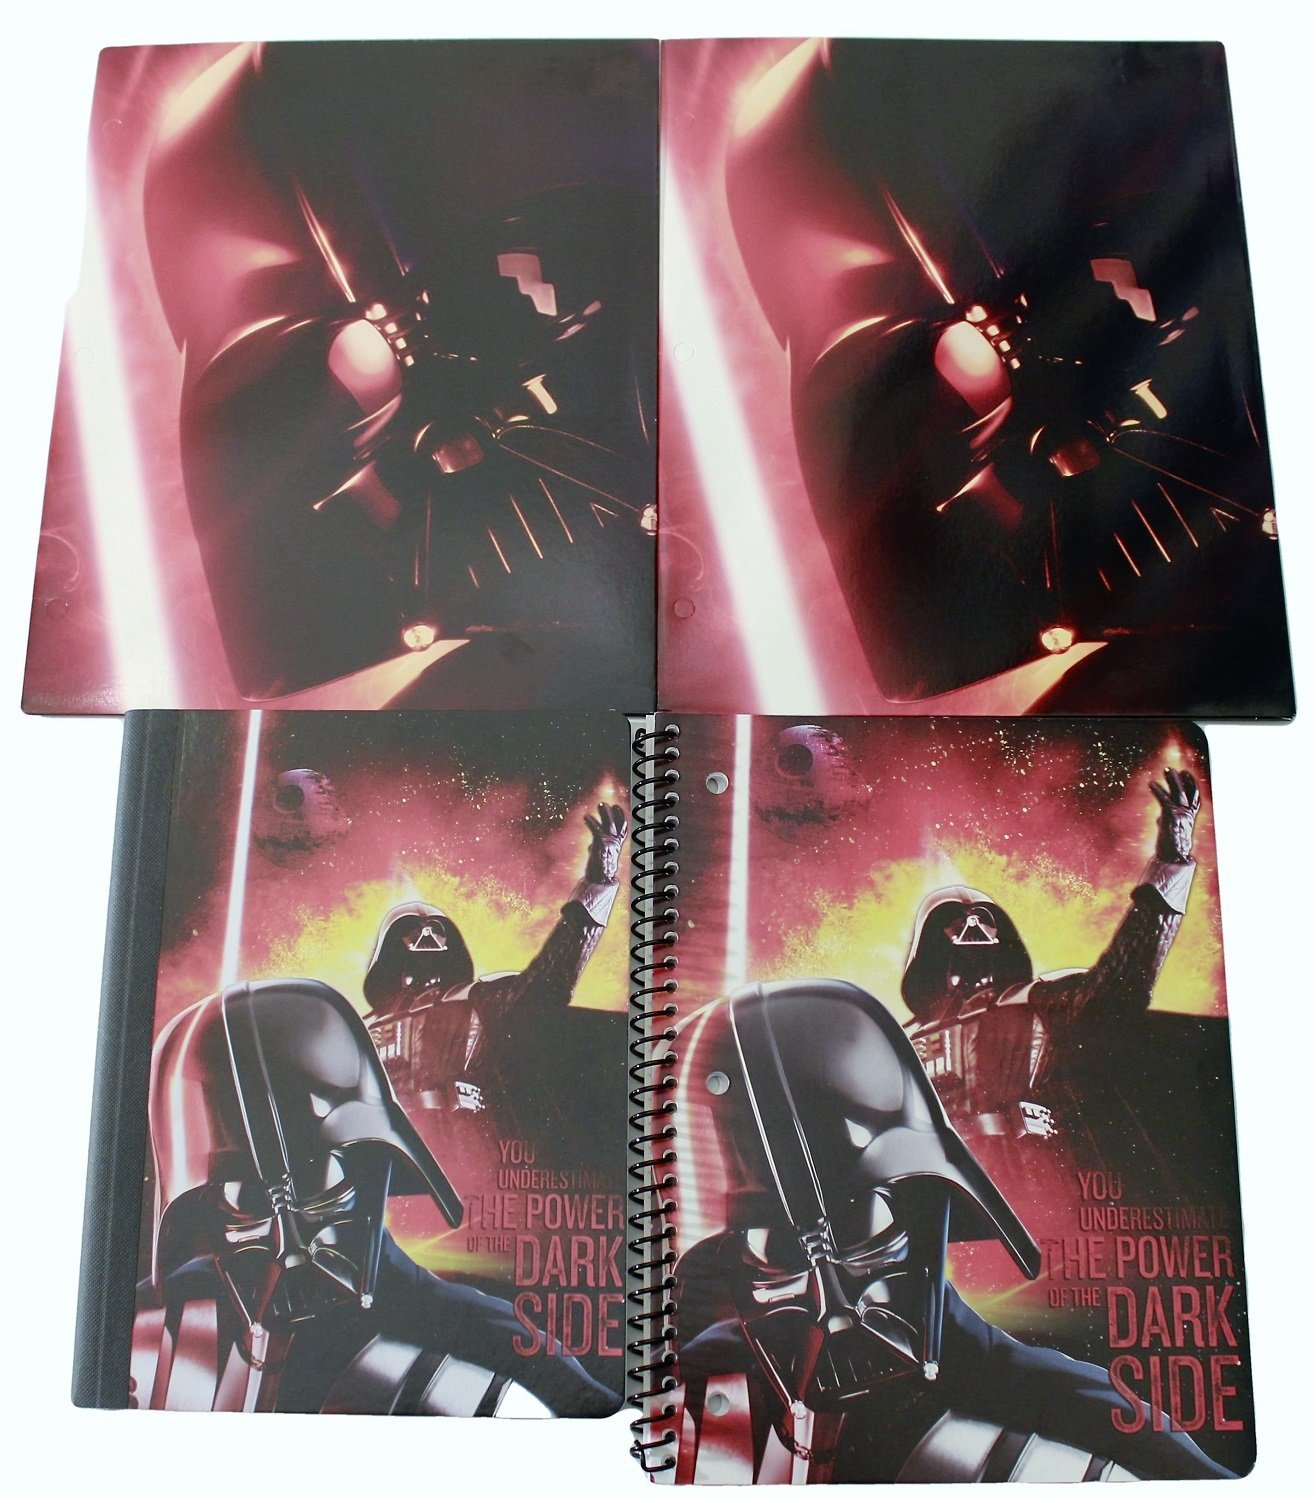 Star Wars Back to School Classroom Supply Bundle for Elementary through College Students: 1 Composition Notebook, 1 Spiral Notebook & 2 Pocket Folders (Red Darth Vader Dark Side)